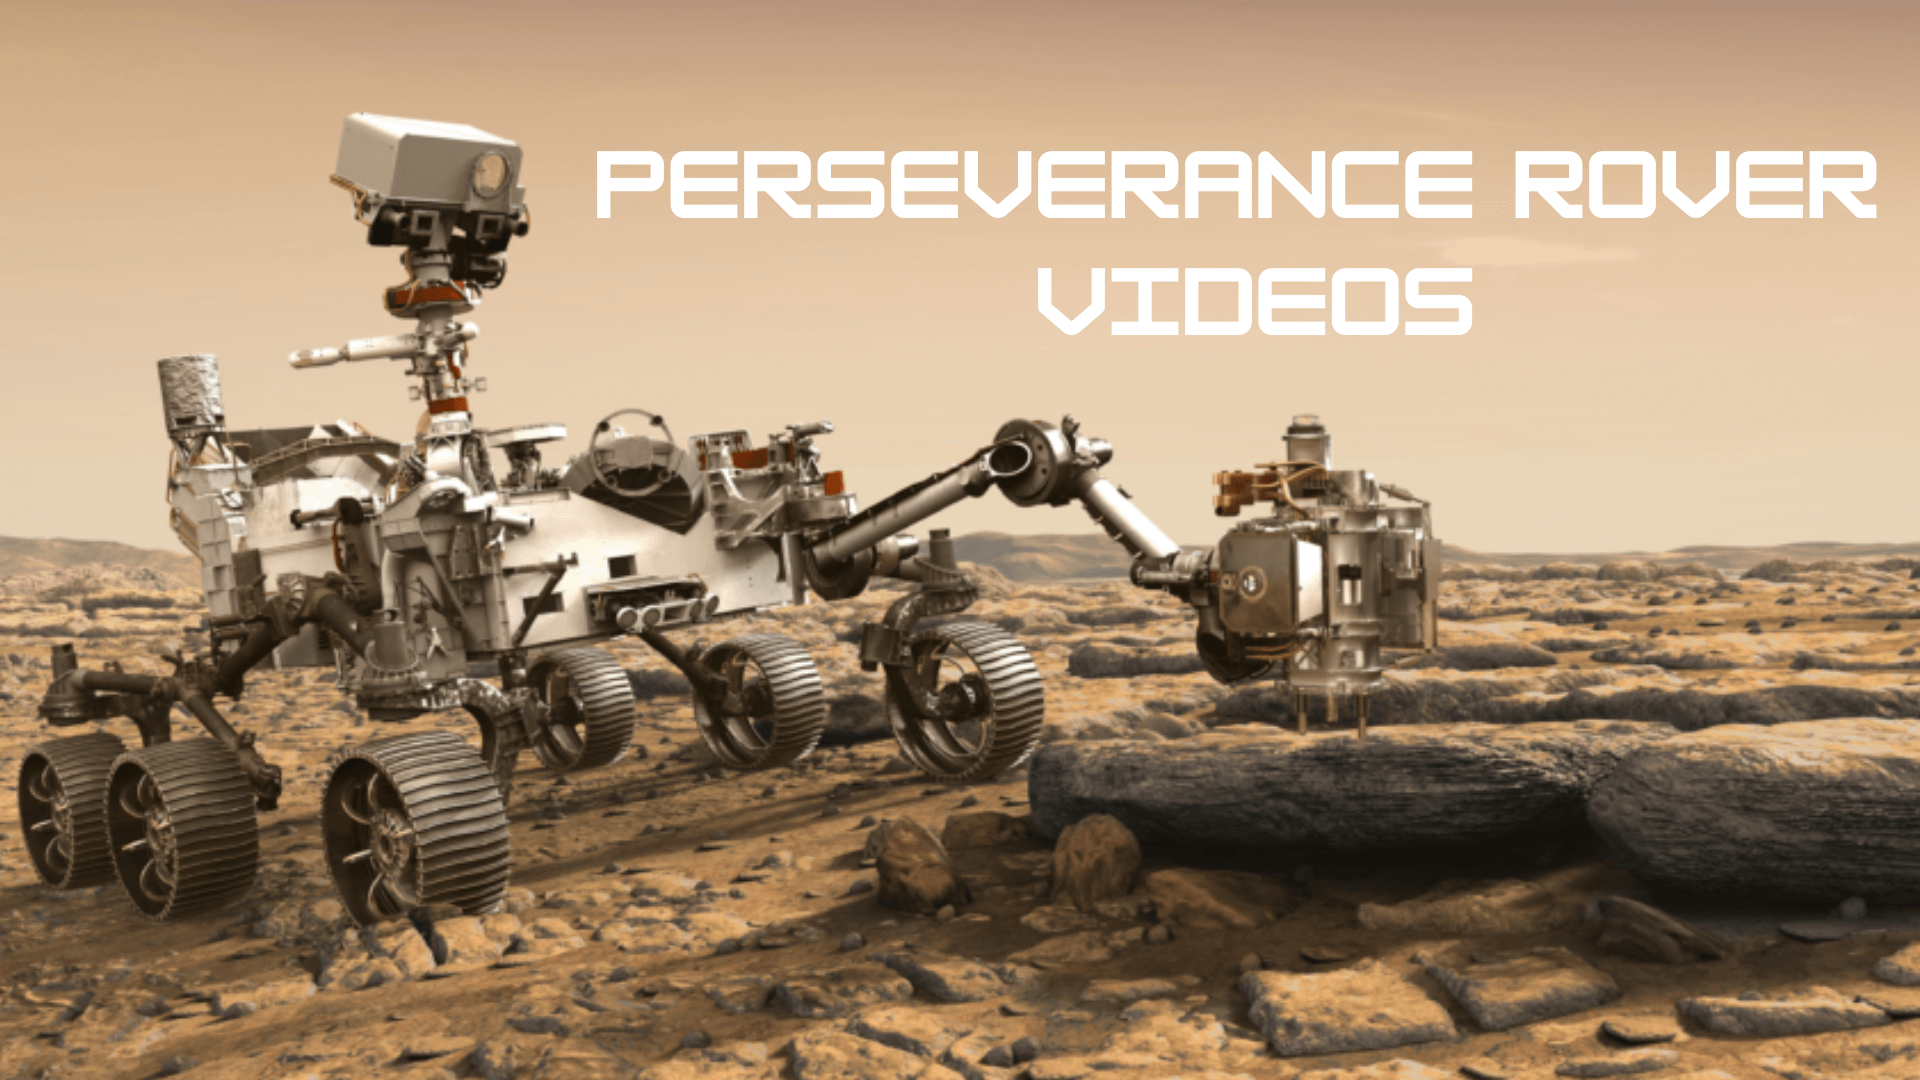 What is the Mars rover up to? Perseverance Rover videos